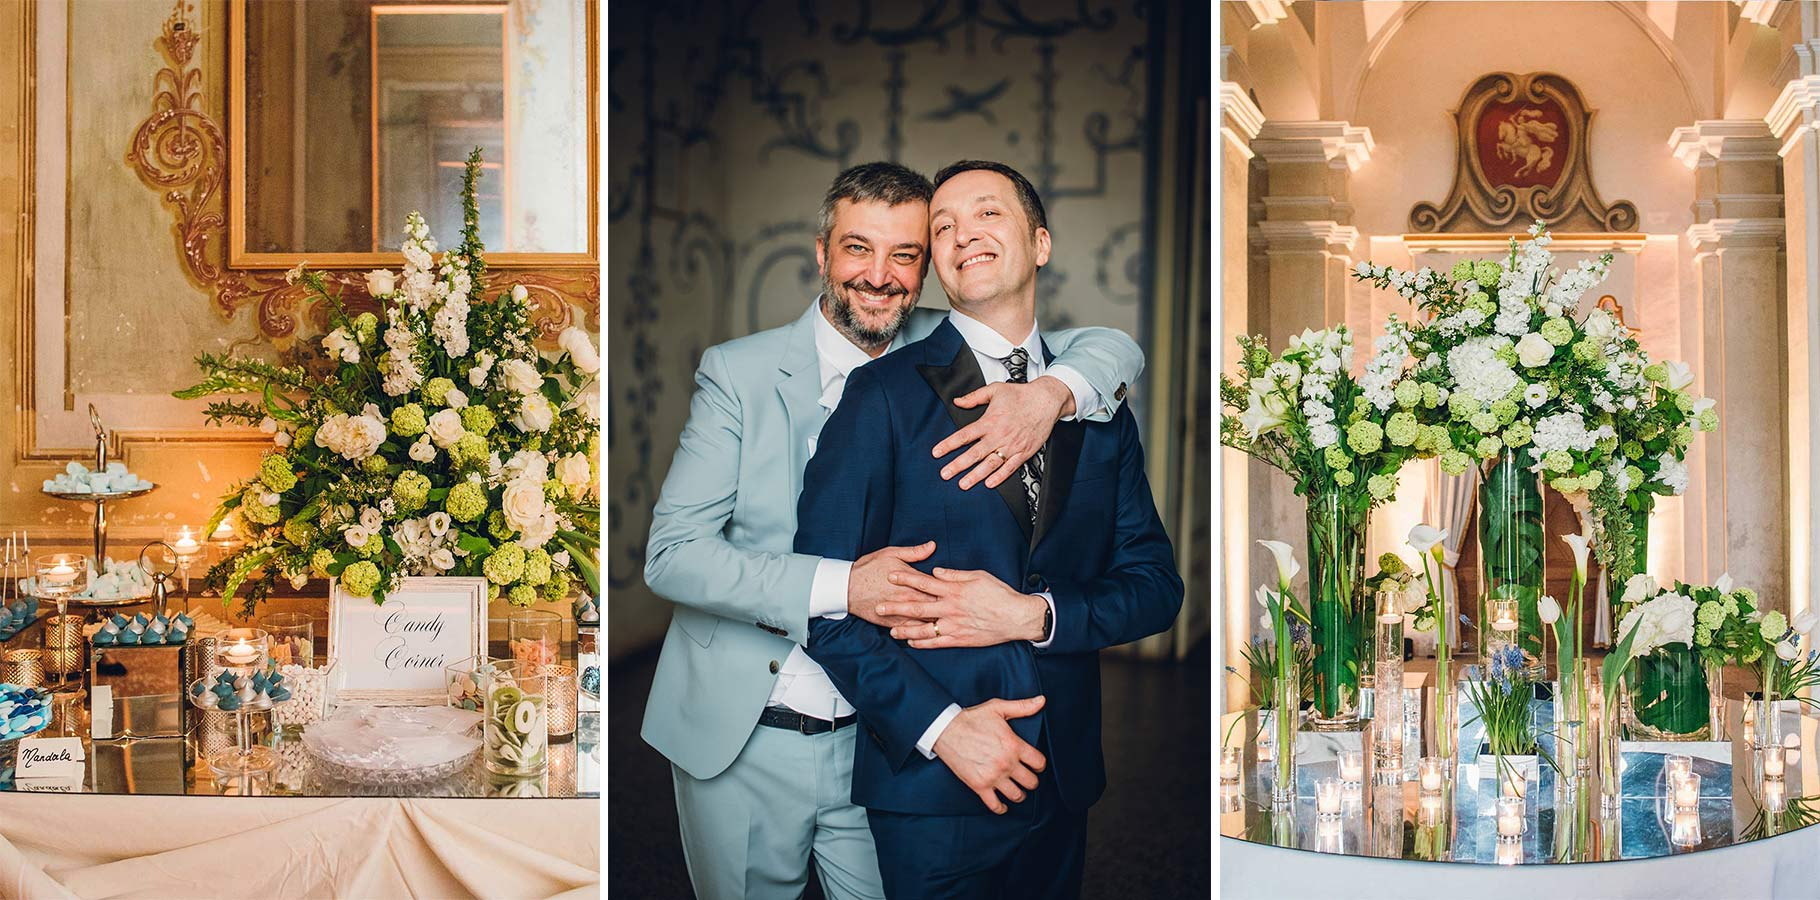 Same Sex Wedding Torino - Coquette Atelier